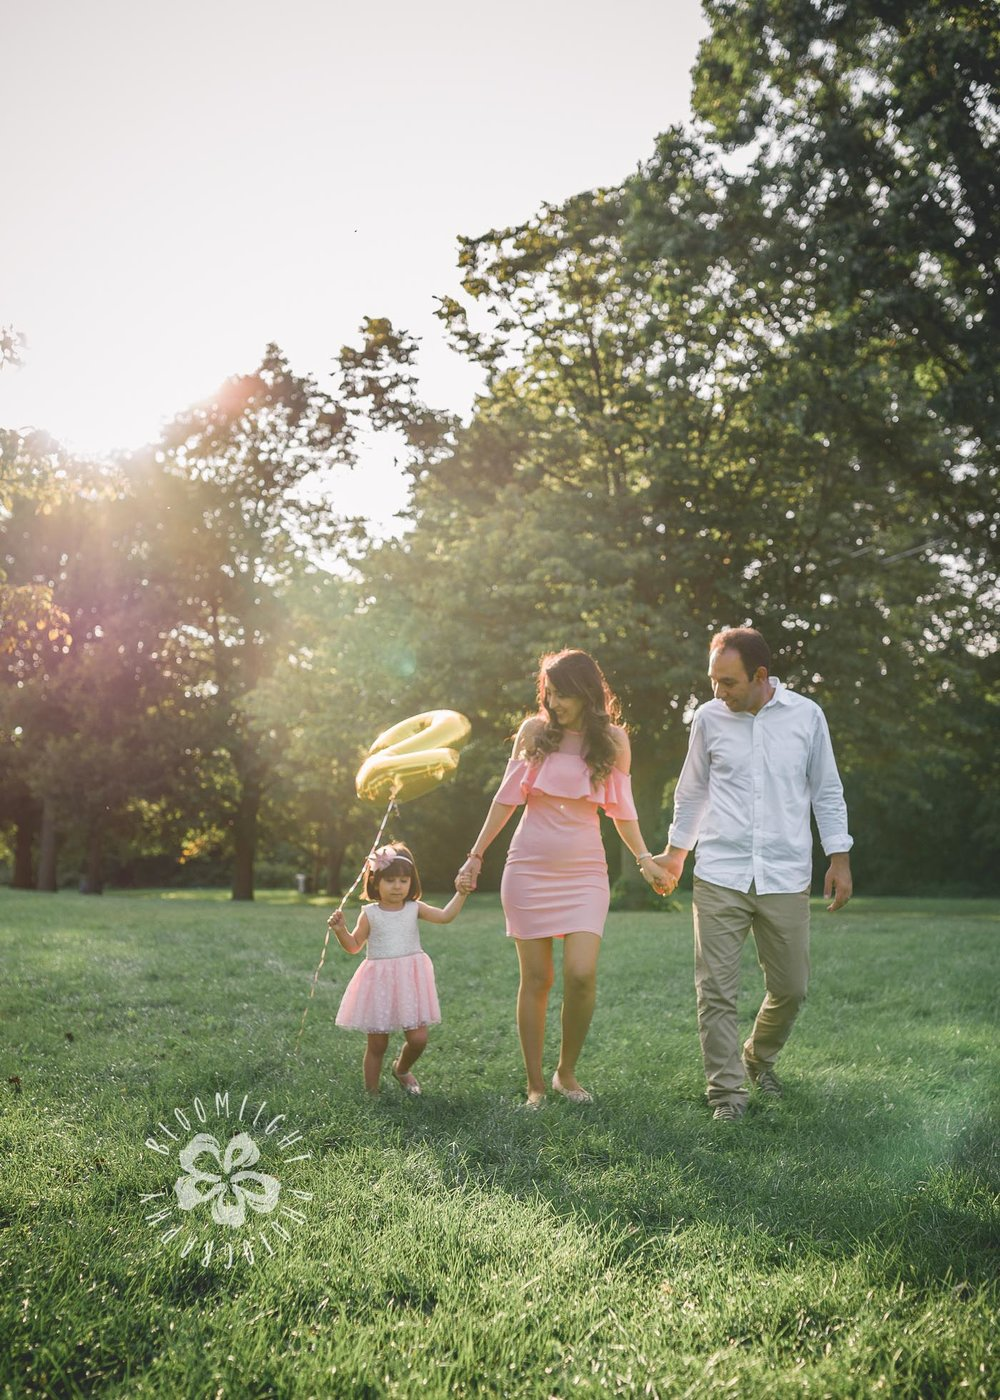 Second-Birthday-Outdoor-photo-Toronto-and NorthYork-baby-and-family-photographer (9).jpg